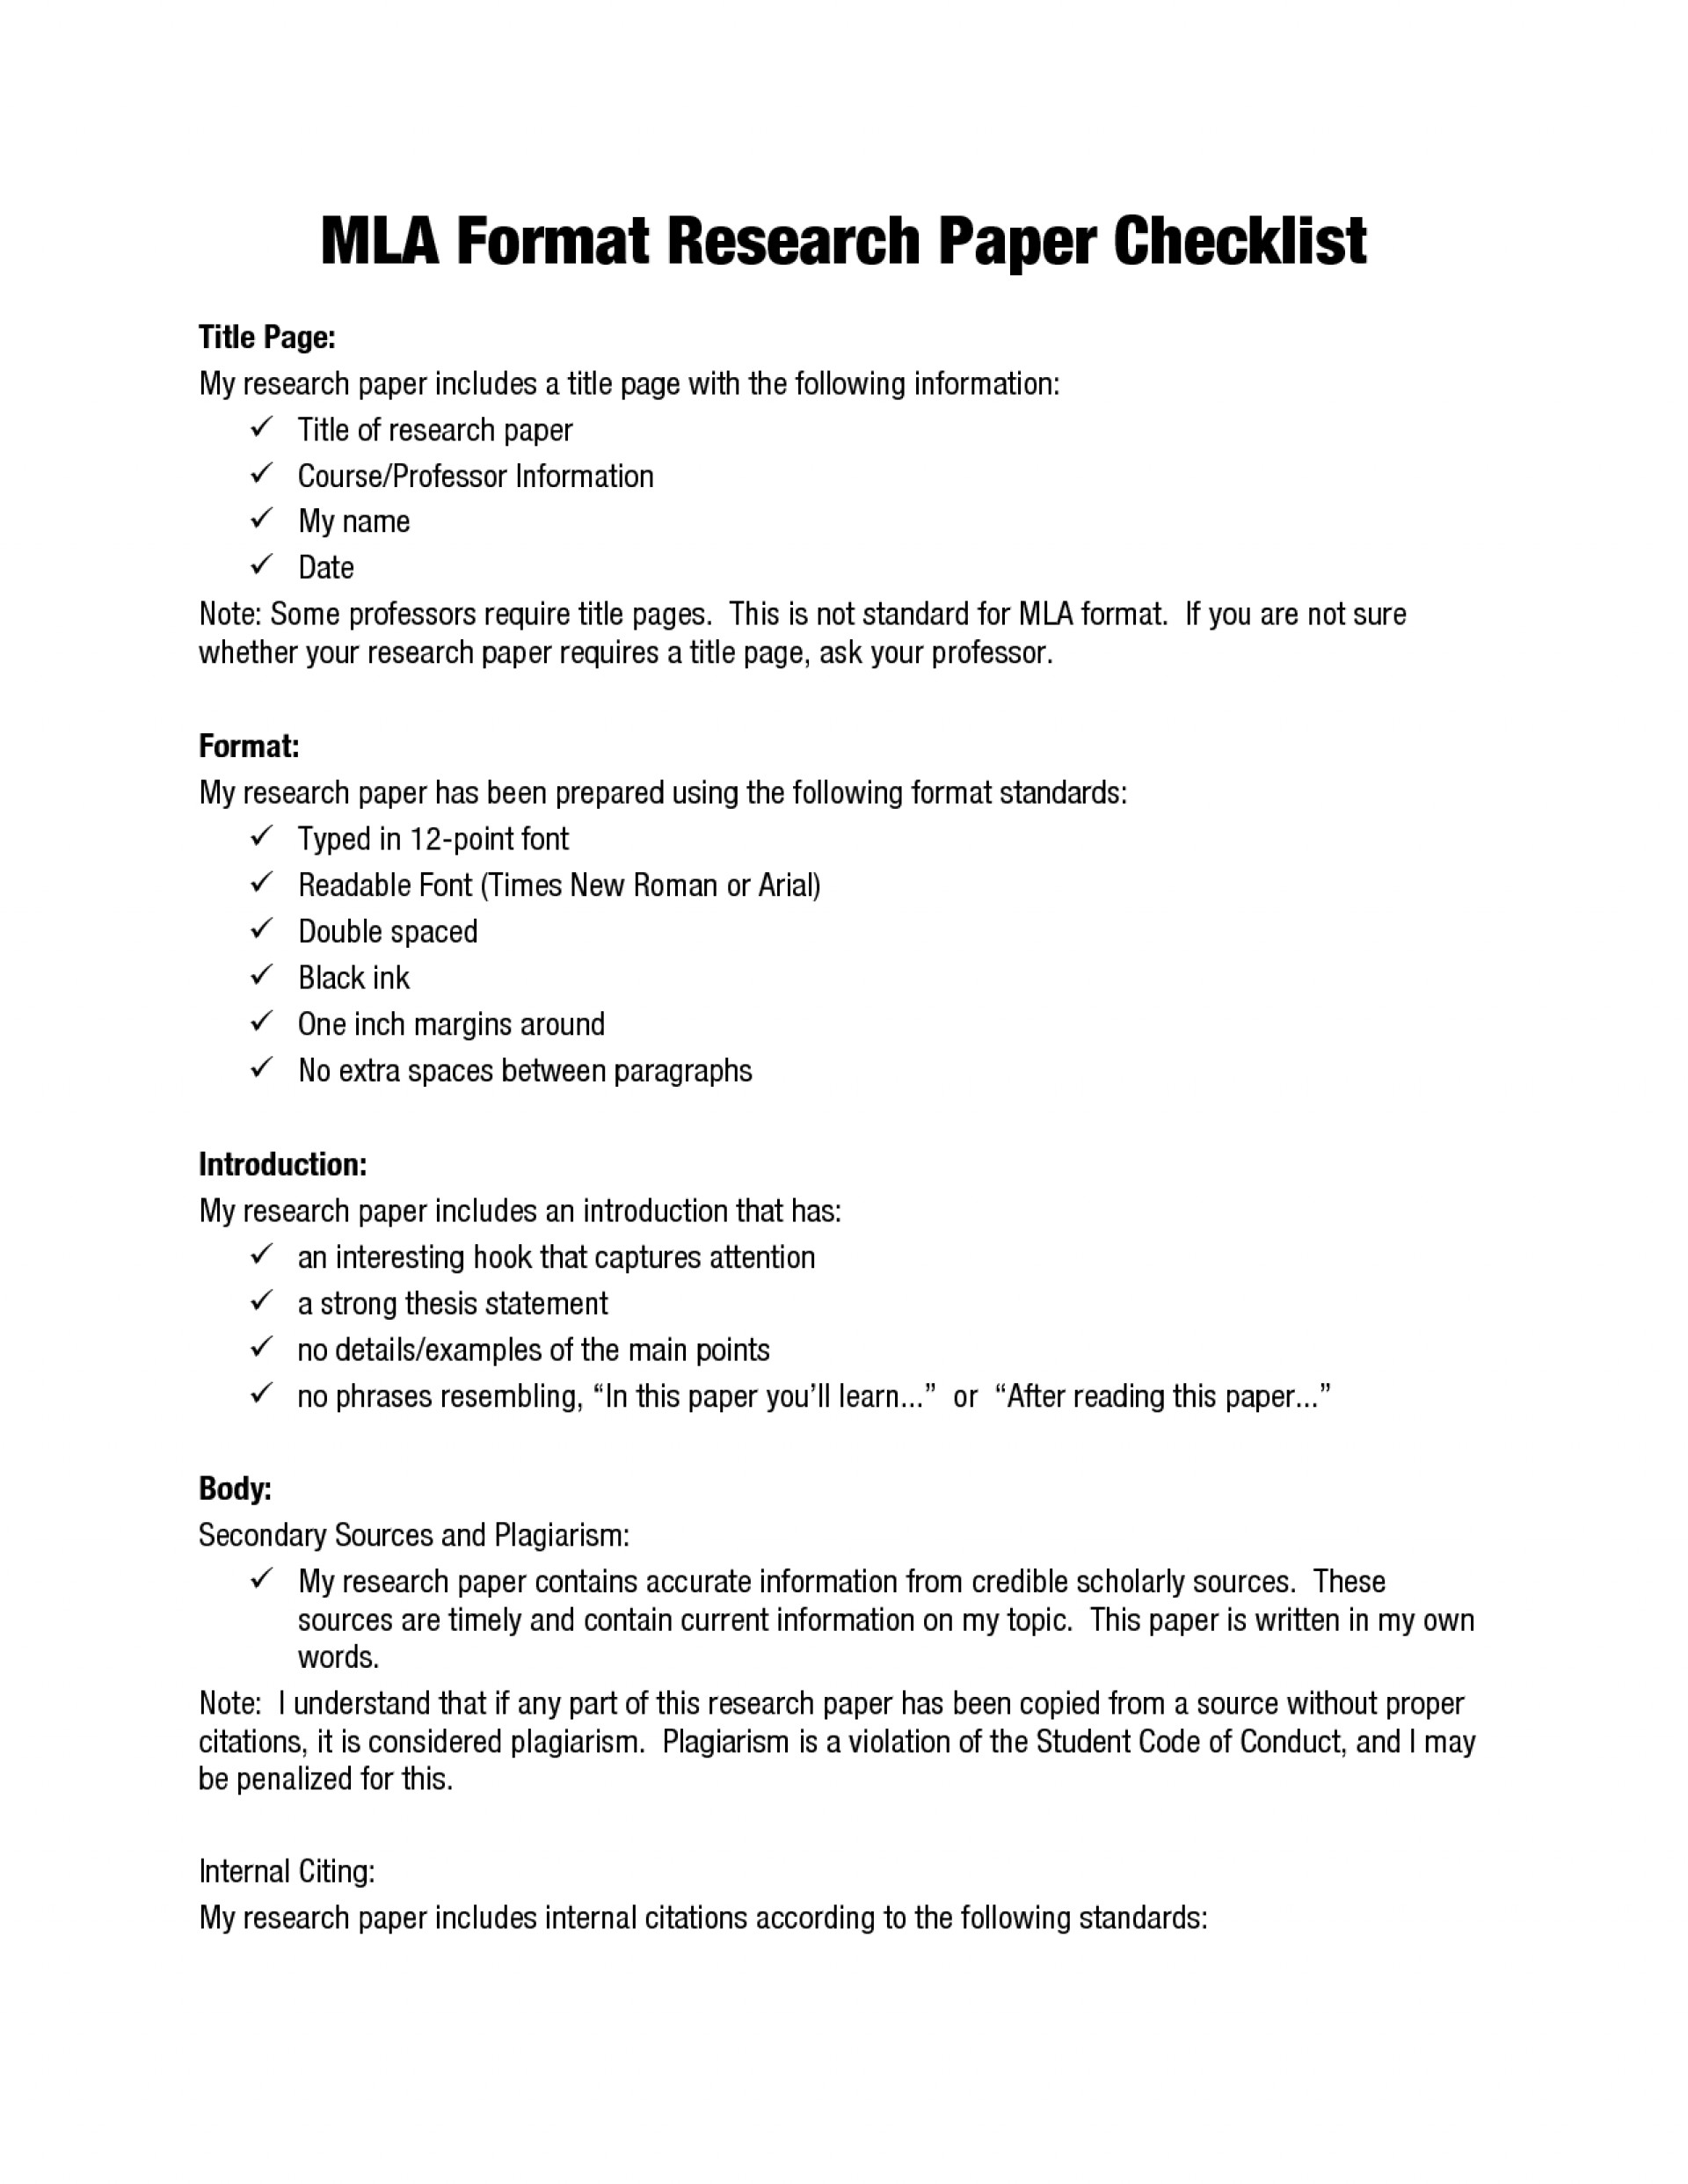 010 Apa Format Research Paper Example Awesome Outline 2015 Citation 1920